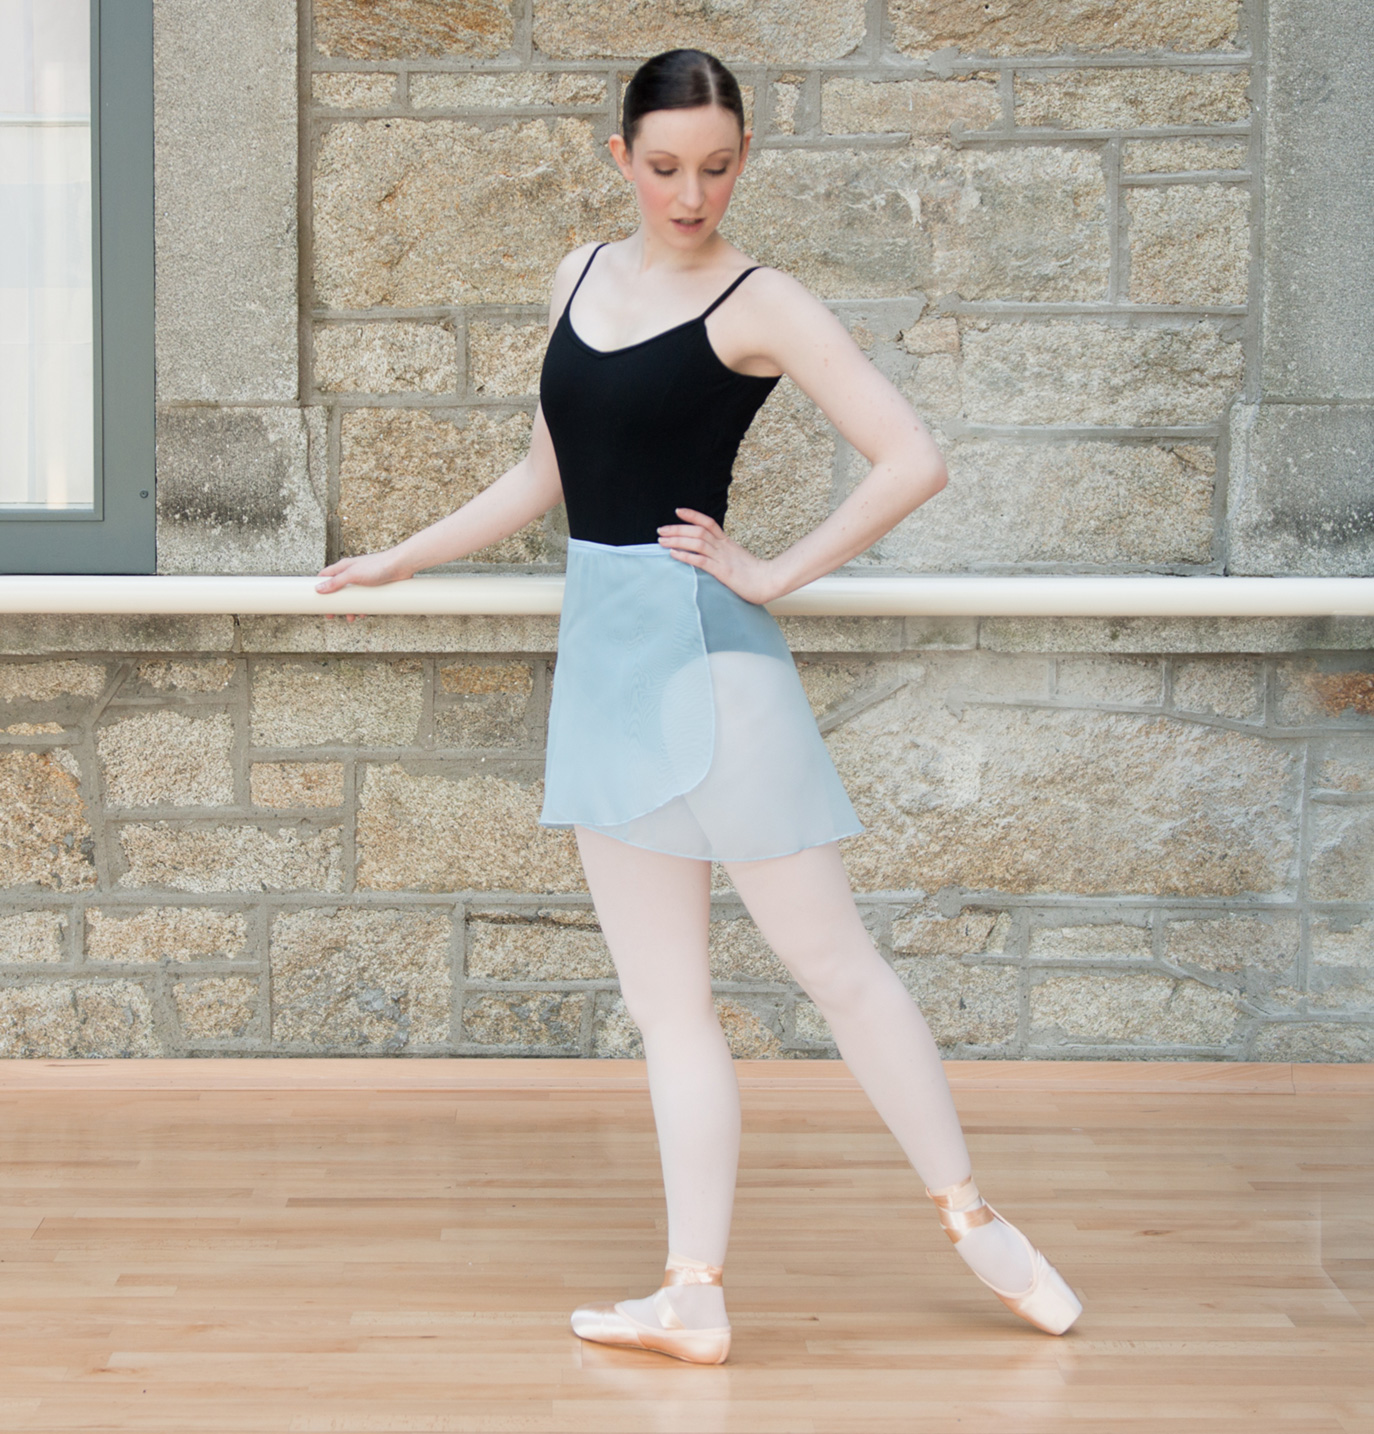 How To Wear Leg Warmers With Ballet Shoes